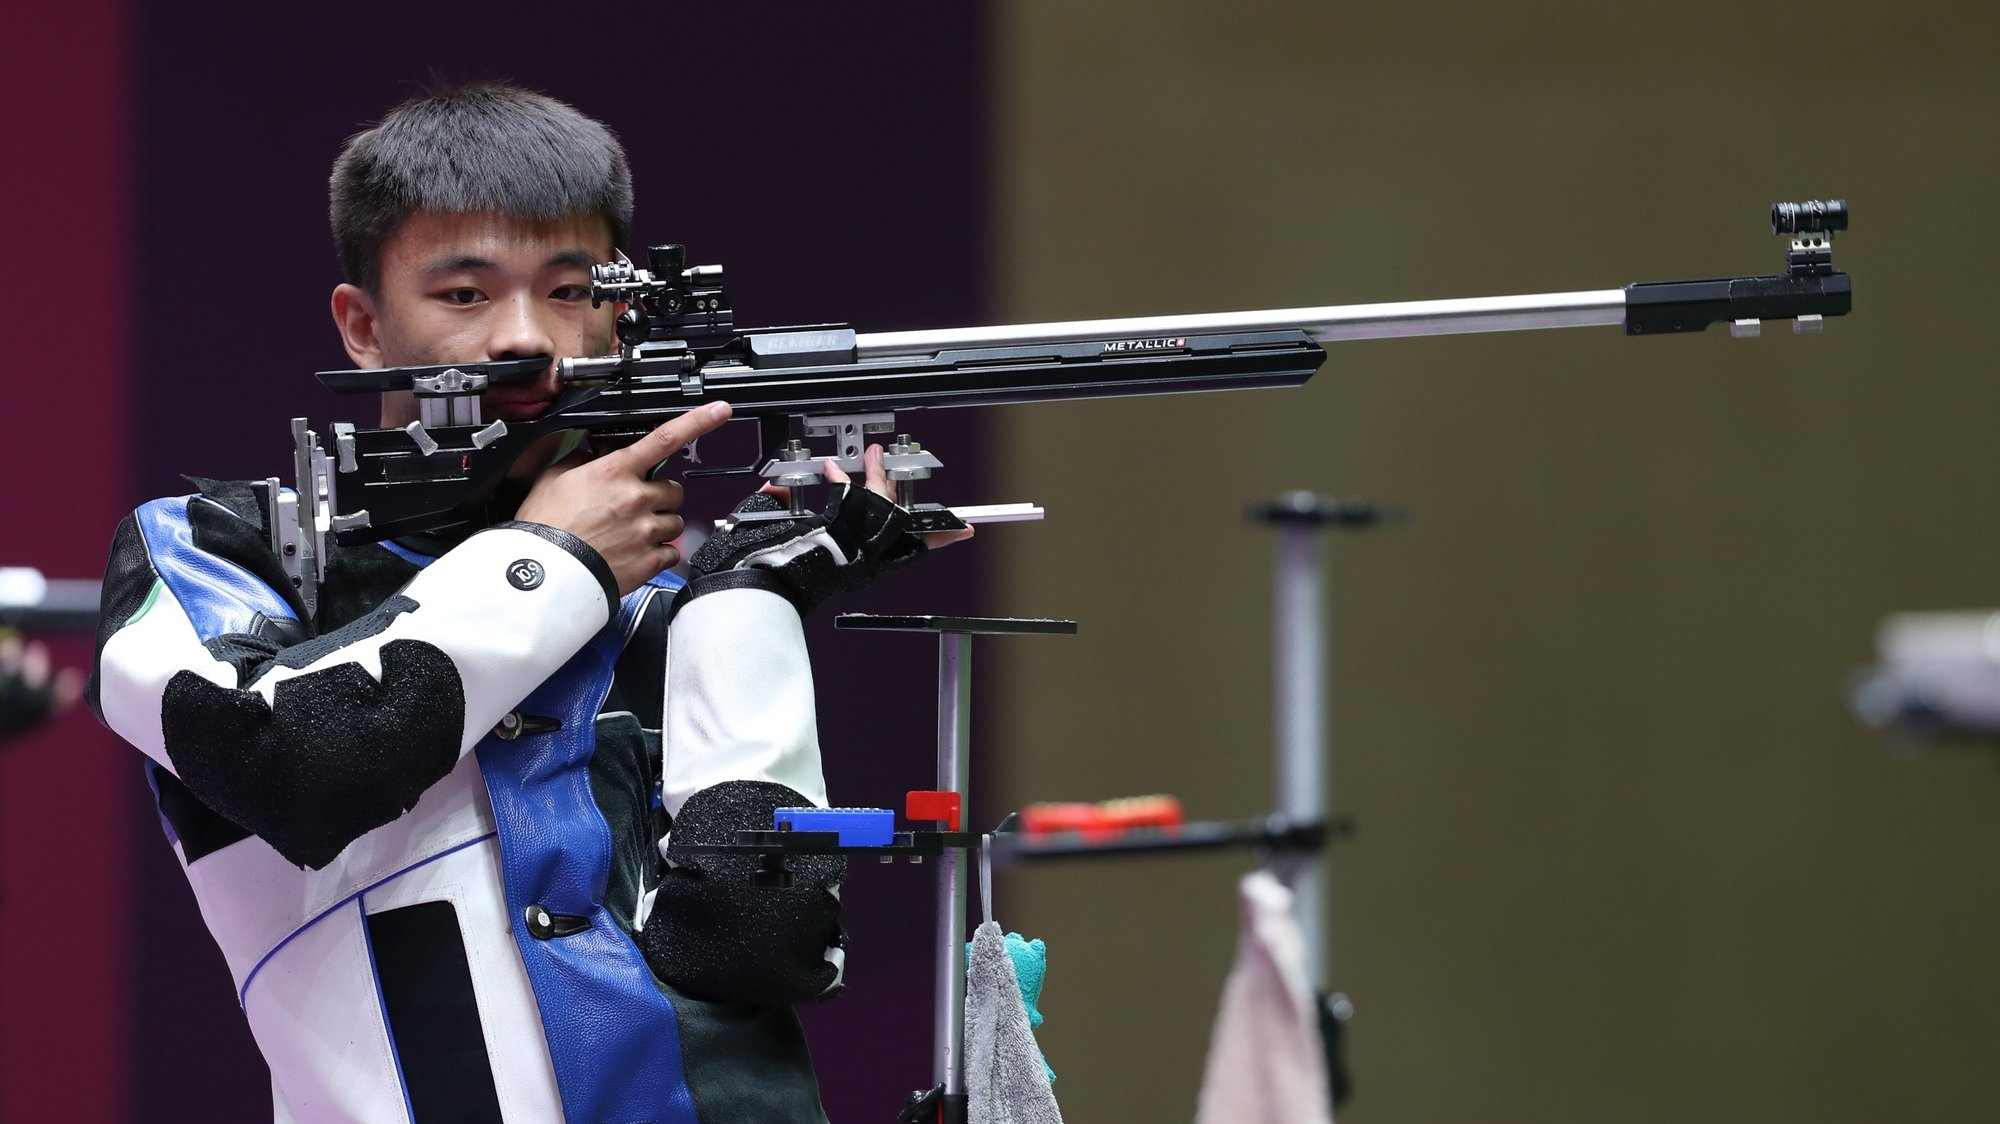 epa09387497 Changhong Zhang of China competes during the 50m Rifle 3 Positions Men's final Victory Ceremony at the Shooting events of the Tokyo 2020 Olympic Games at the Camp Asaka in Nerima, Tokyo, Japan, 02 August 2021.  EPA/HEDAYATULLAH AMID